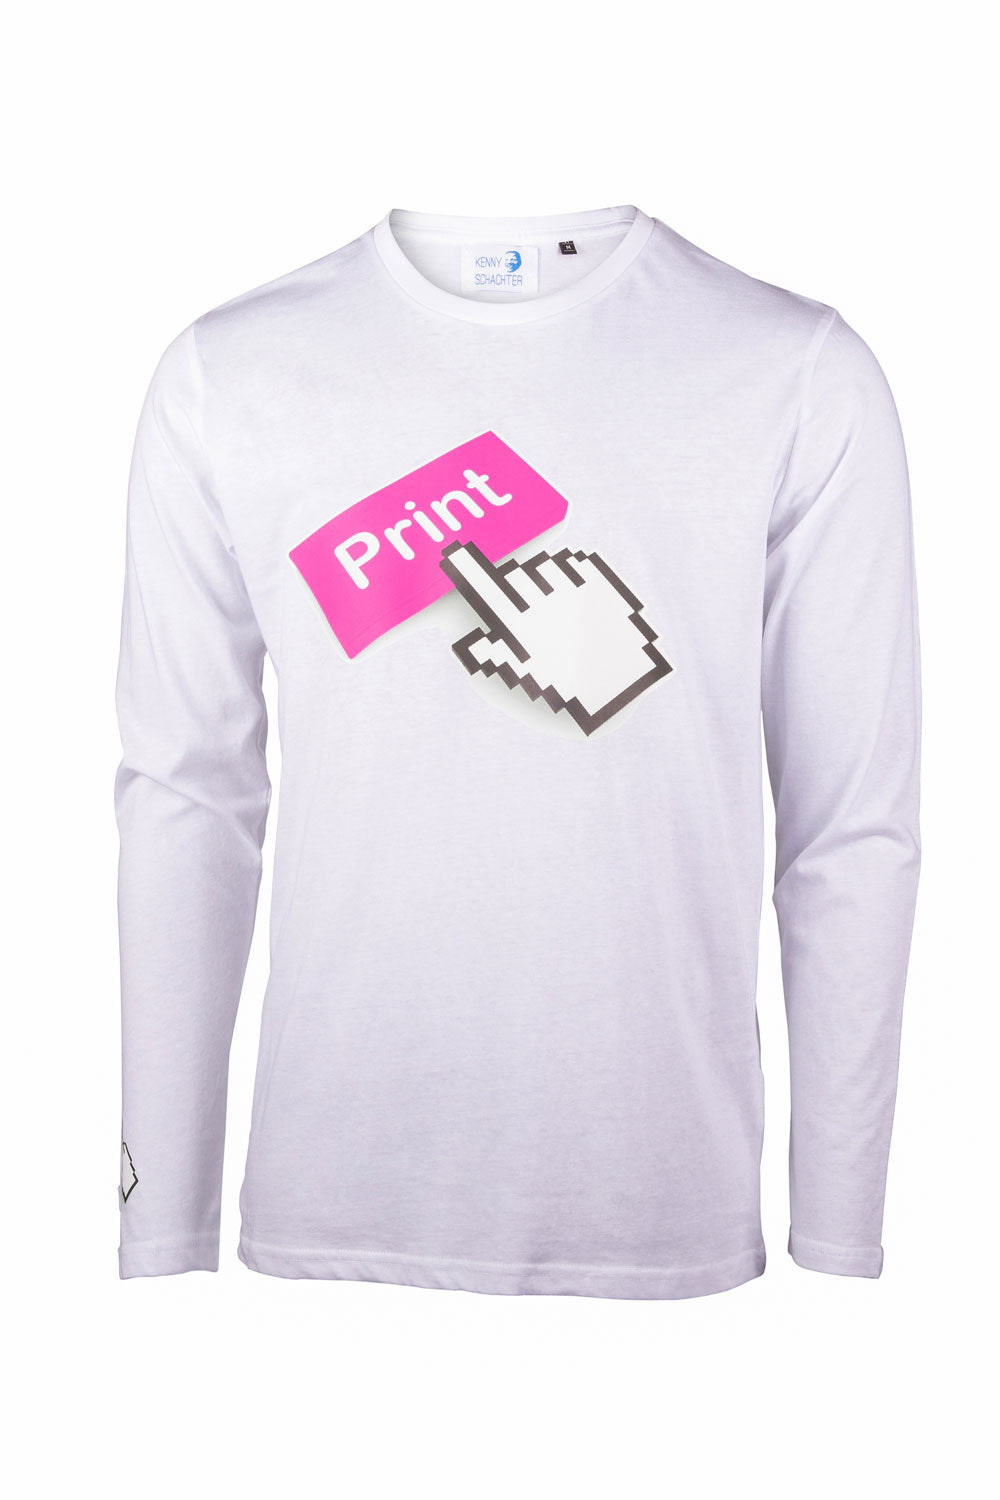 Kenny Schachter 'Print' Long Sleeve Top